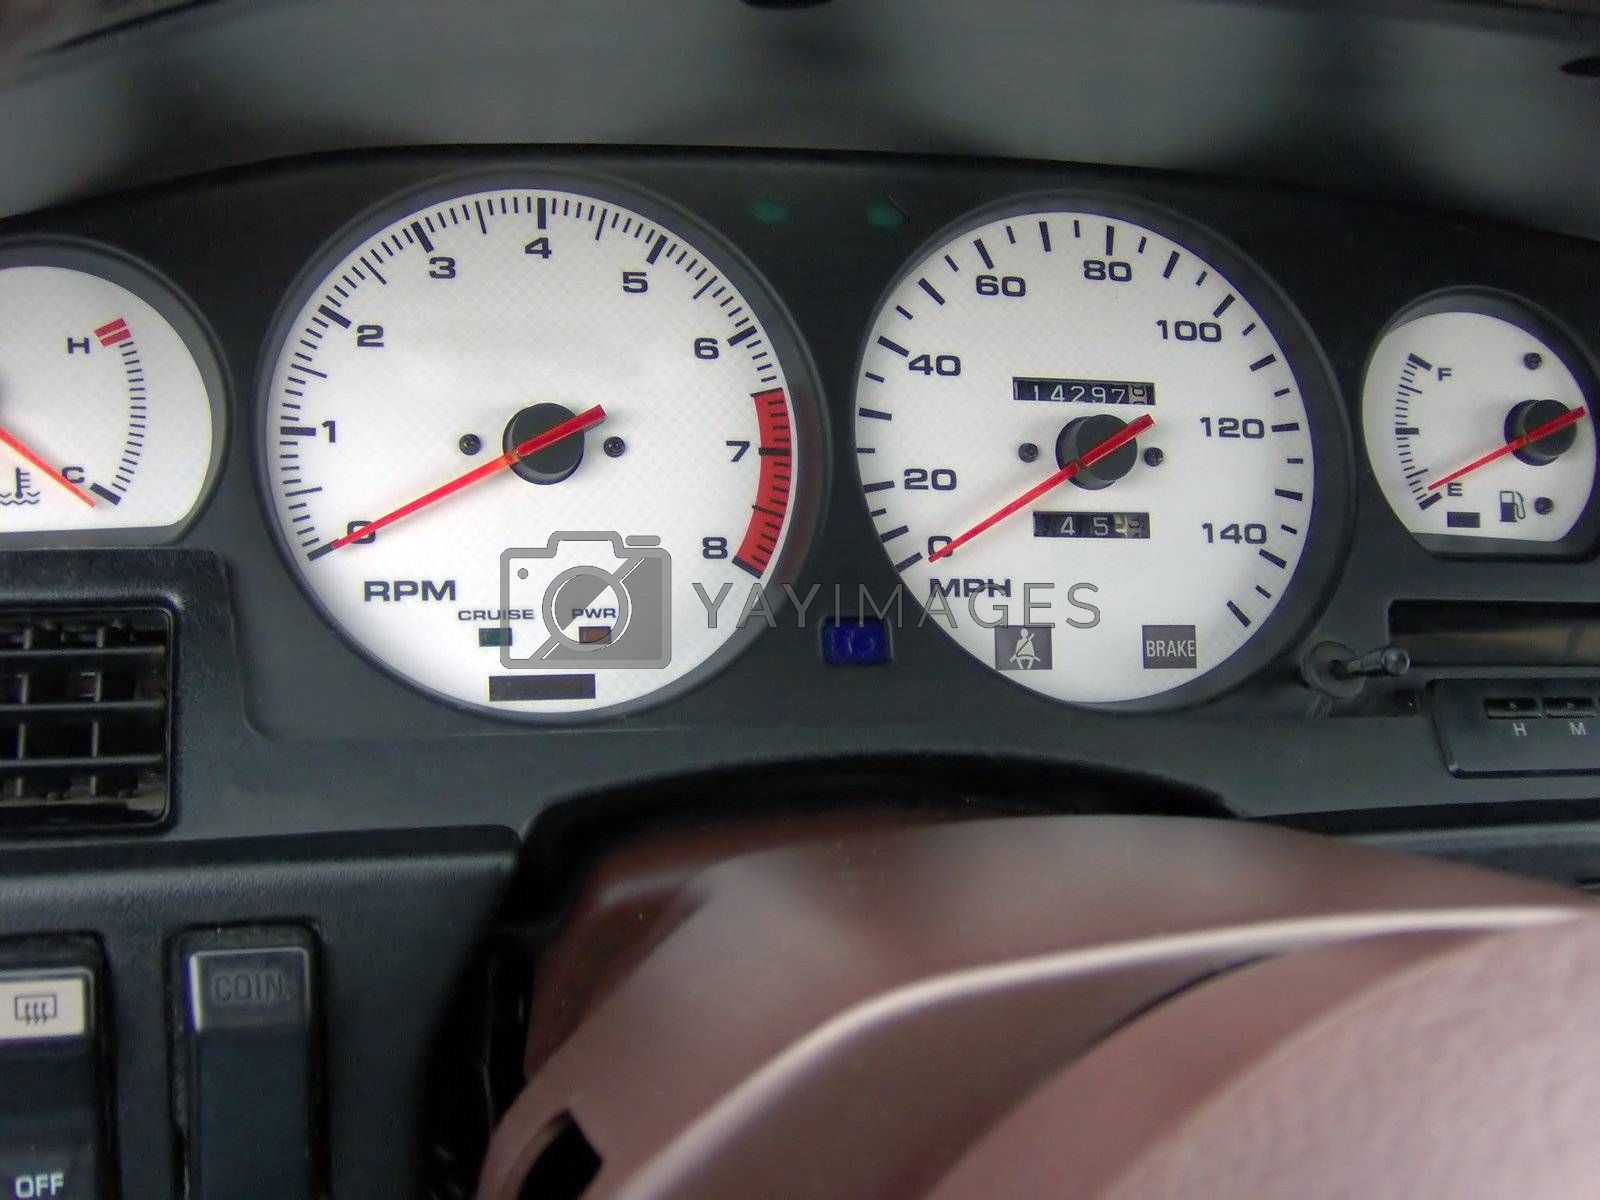 This is the custom indiglo gauge cluster in my mk3 Toyota Supra.